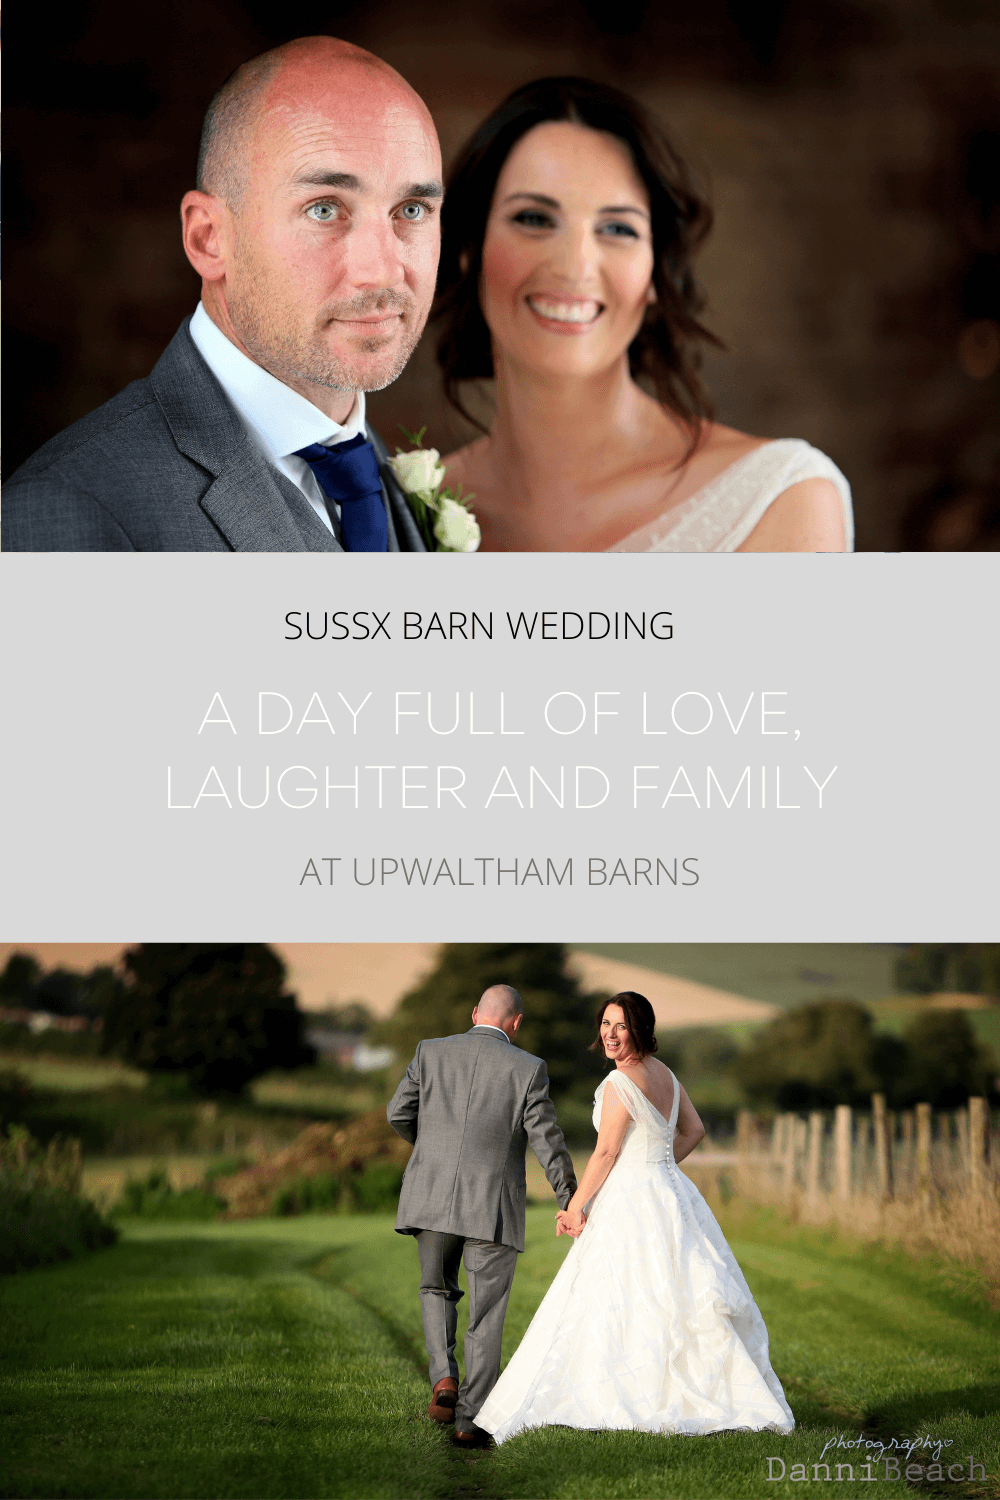 upwaltham barns sussex wedding photographer fun family